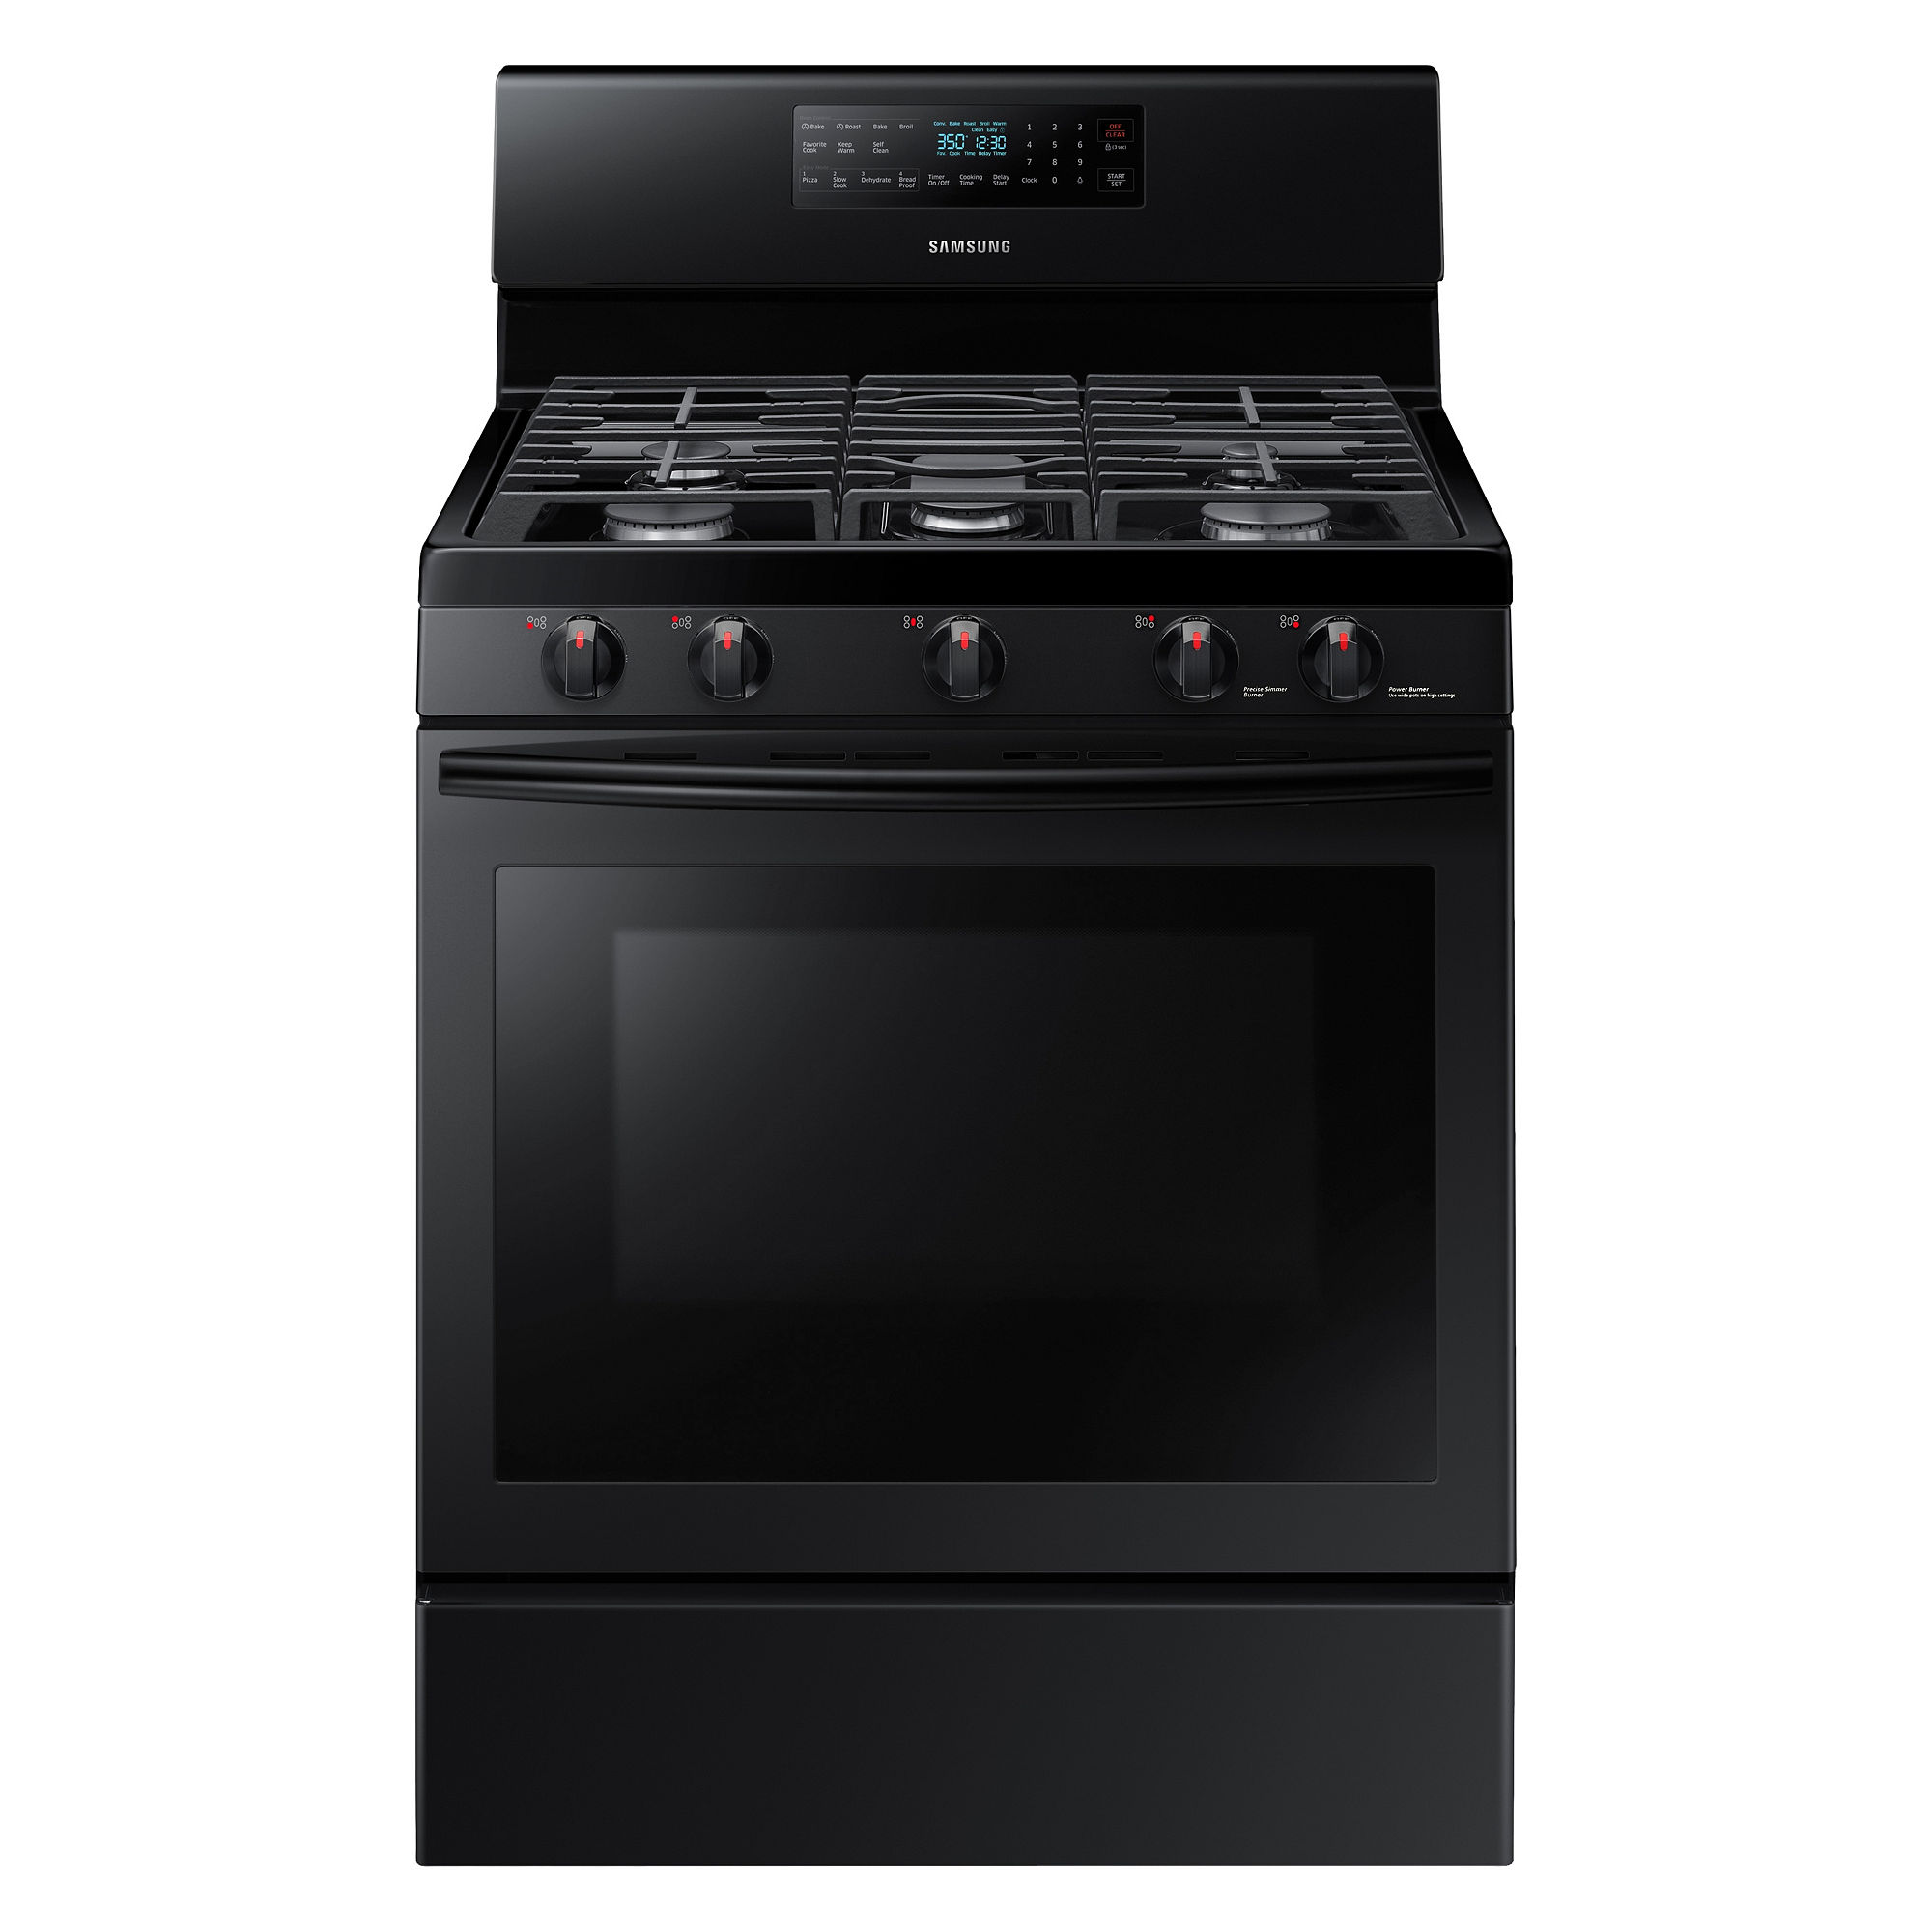 Samsung 5.8 cu. ft. Gas Range with Convection - NX58M5600SB/AA